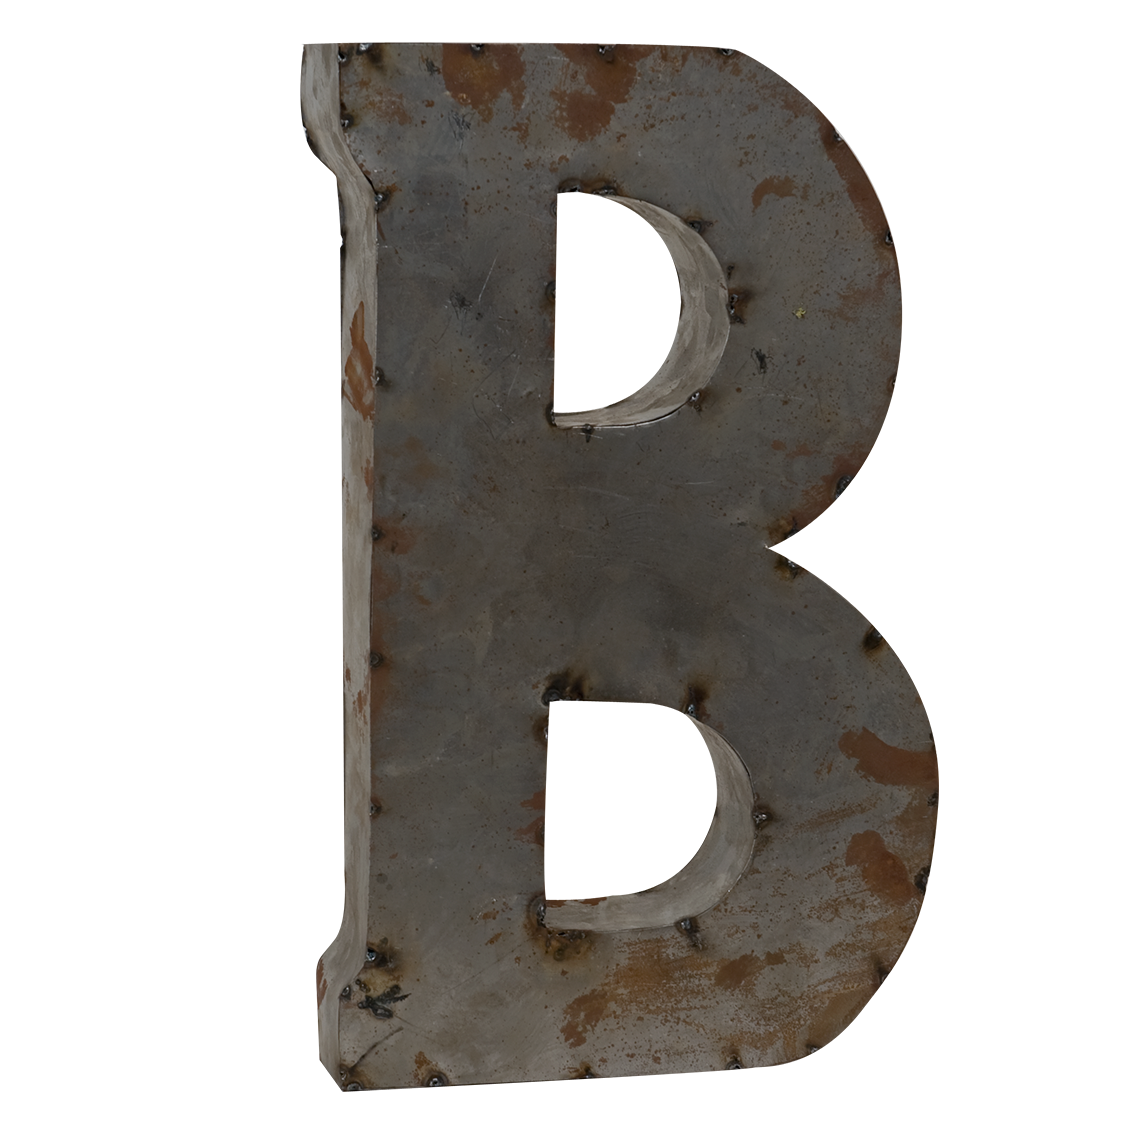 Tin Letters Reclaimed Tin Letter B  Rust And Metals